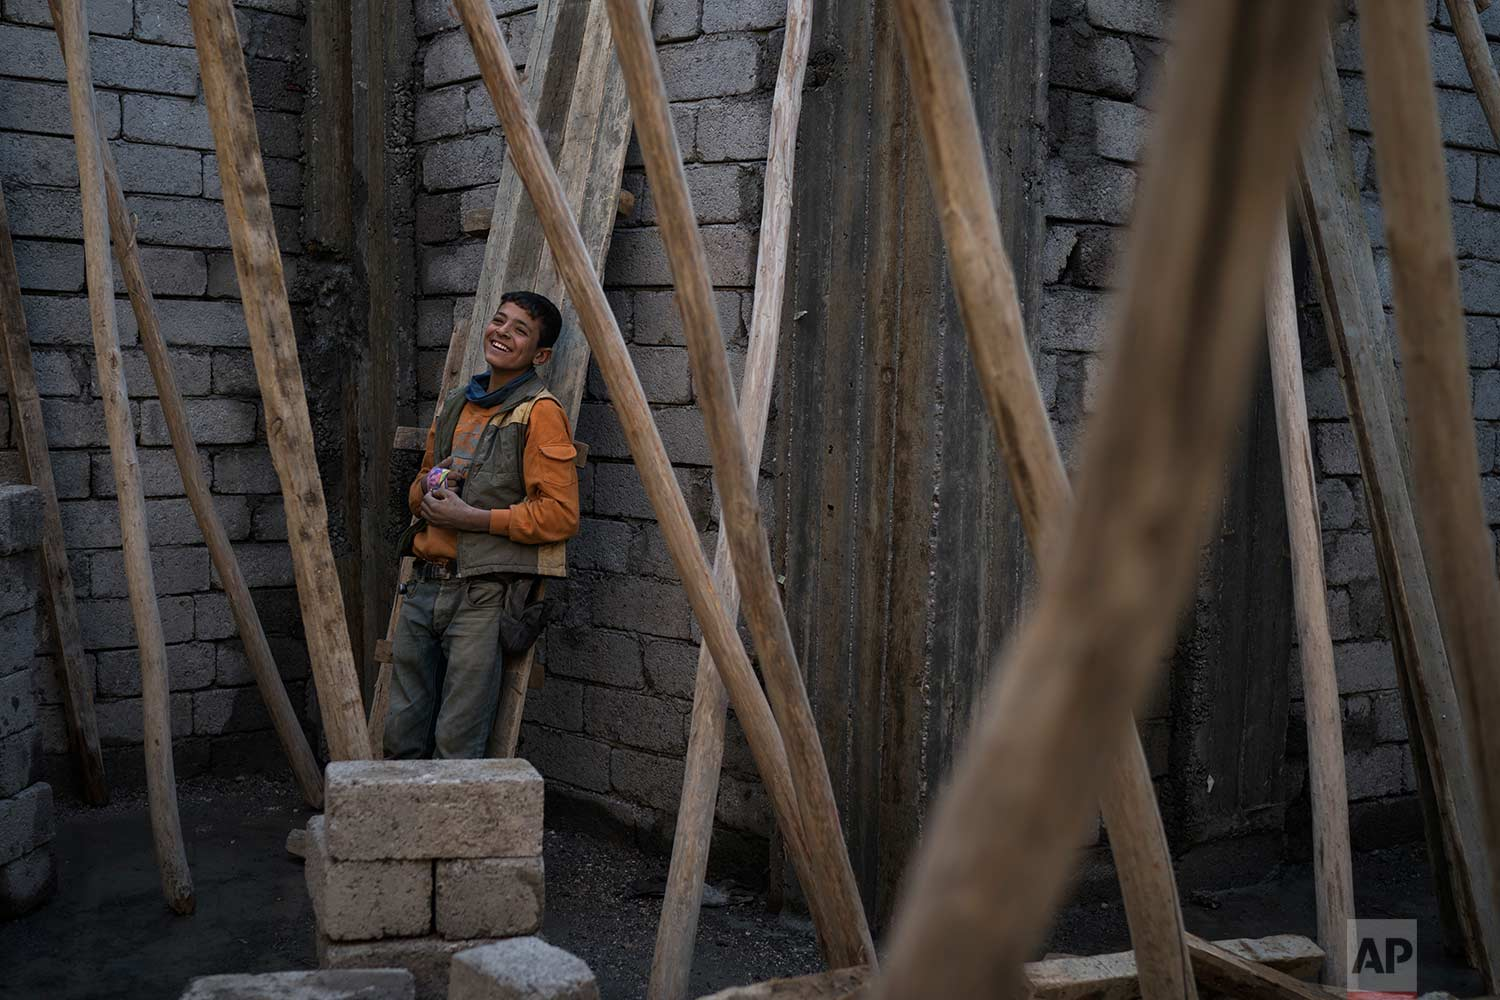 In this Nov. 14, 2017 photo, a young construction worker smiles during a break as he rebuilds a destroyed shop in the Old City of Mosul, Iraq. (AP Photo/Felipe Dana)